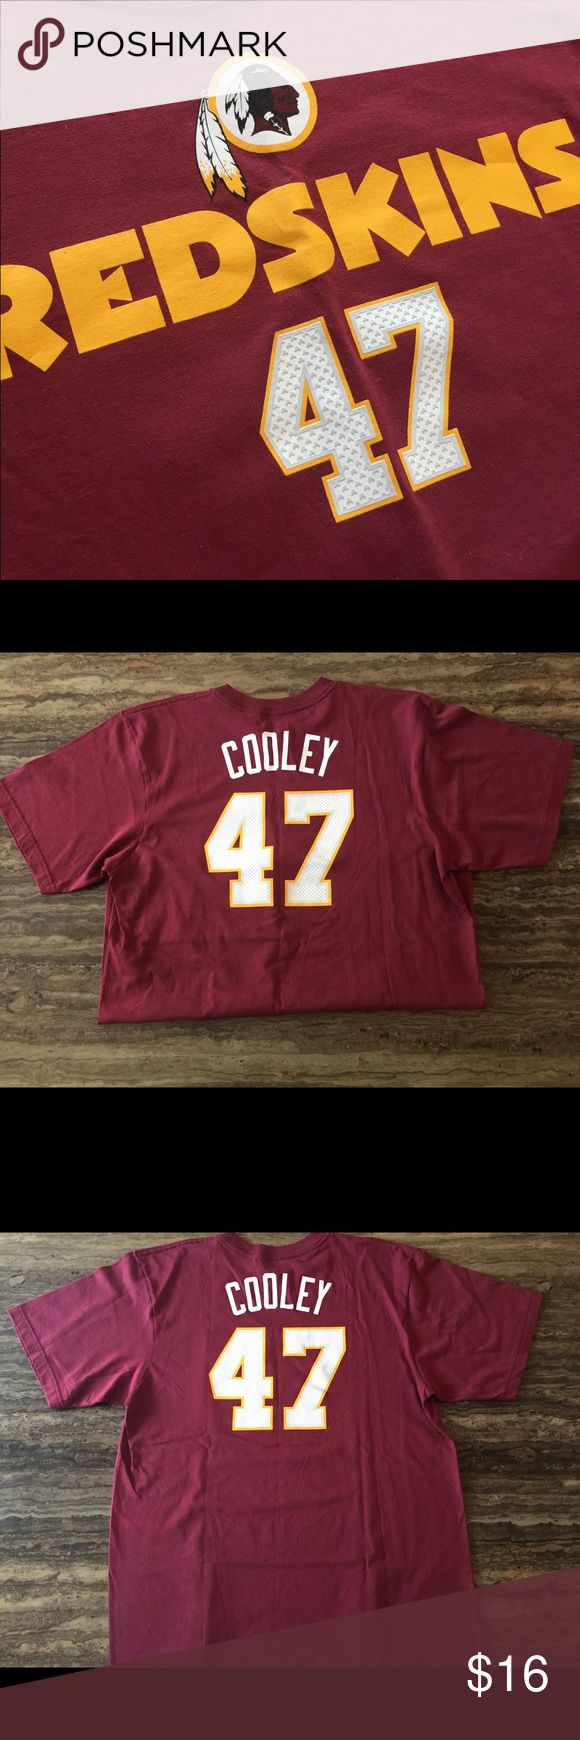 """REDSKINS COOLEY TEE SHIRT  #47 SIZE LARGE This is a nice preowned shirt.  The Redskin fan must have Cooley #47 in a size large .  The flat chest measures 22"""" across and and 31"""" long the sleeve length is 9 3/4"""".  The shirt is made by Reebok and it is 100% cotton. There is a few slight faded spot on the shirt, shows some signs of wear.  see photos for more condition details . Questions please ask Reebok Shirts Tees - Short Sleeve"""